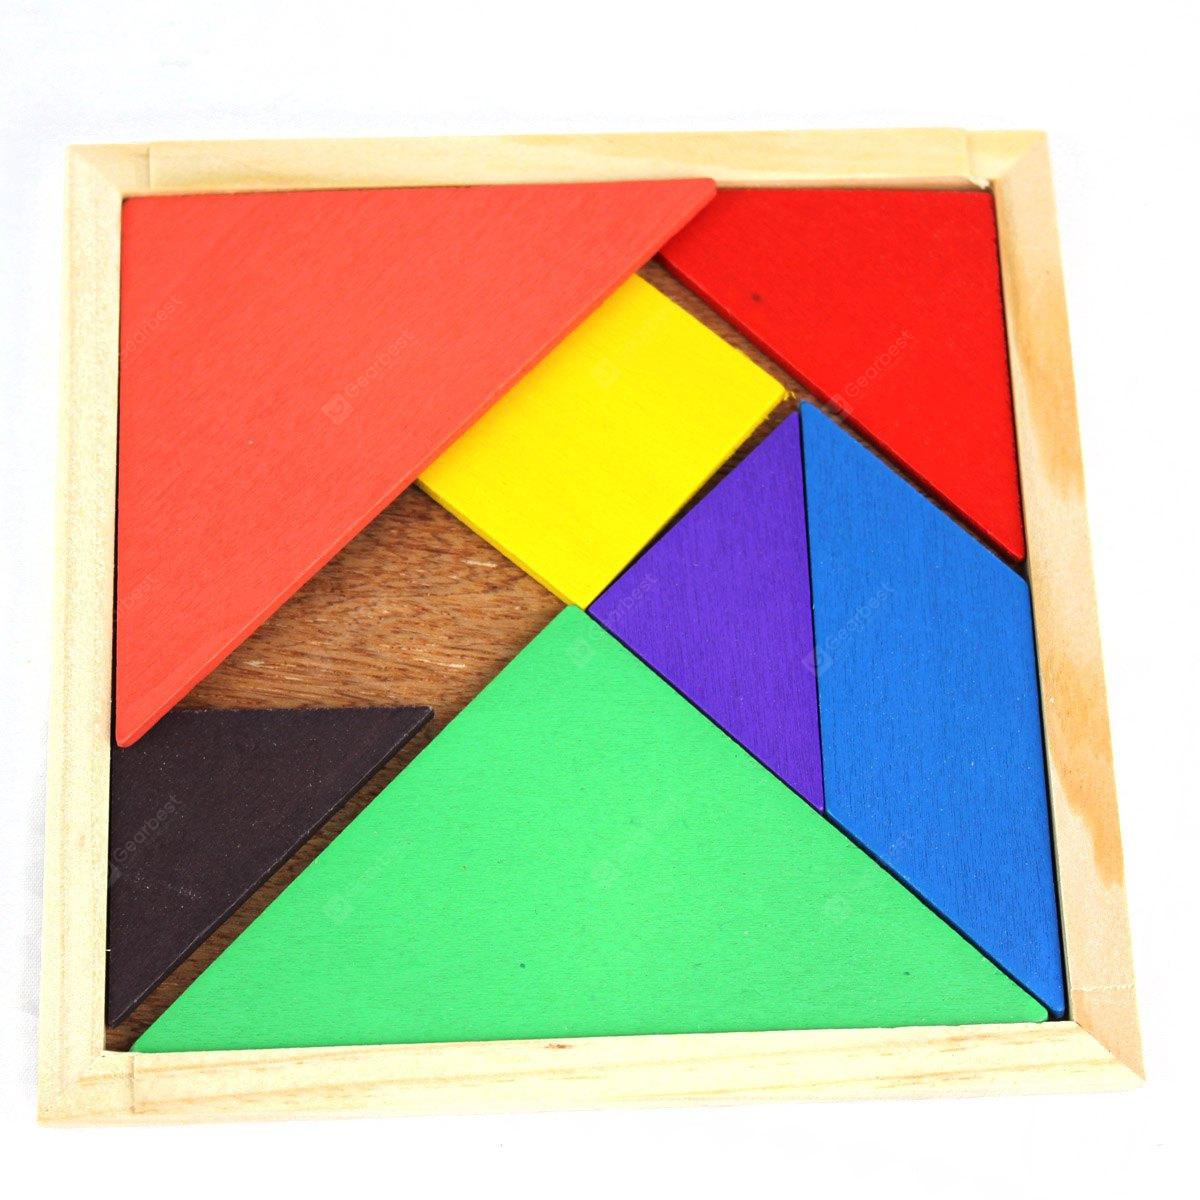 Educational Wooden Tangram Toy Simple Jigsaw Puzzle for Animal Boat Human